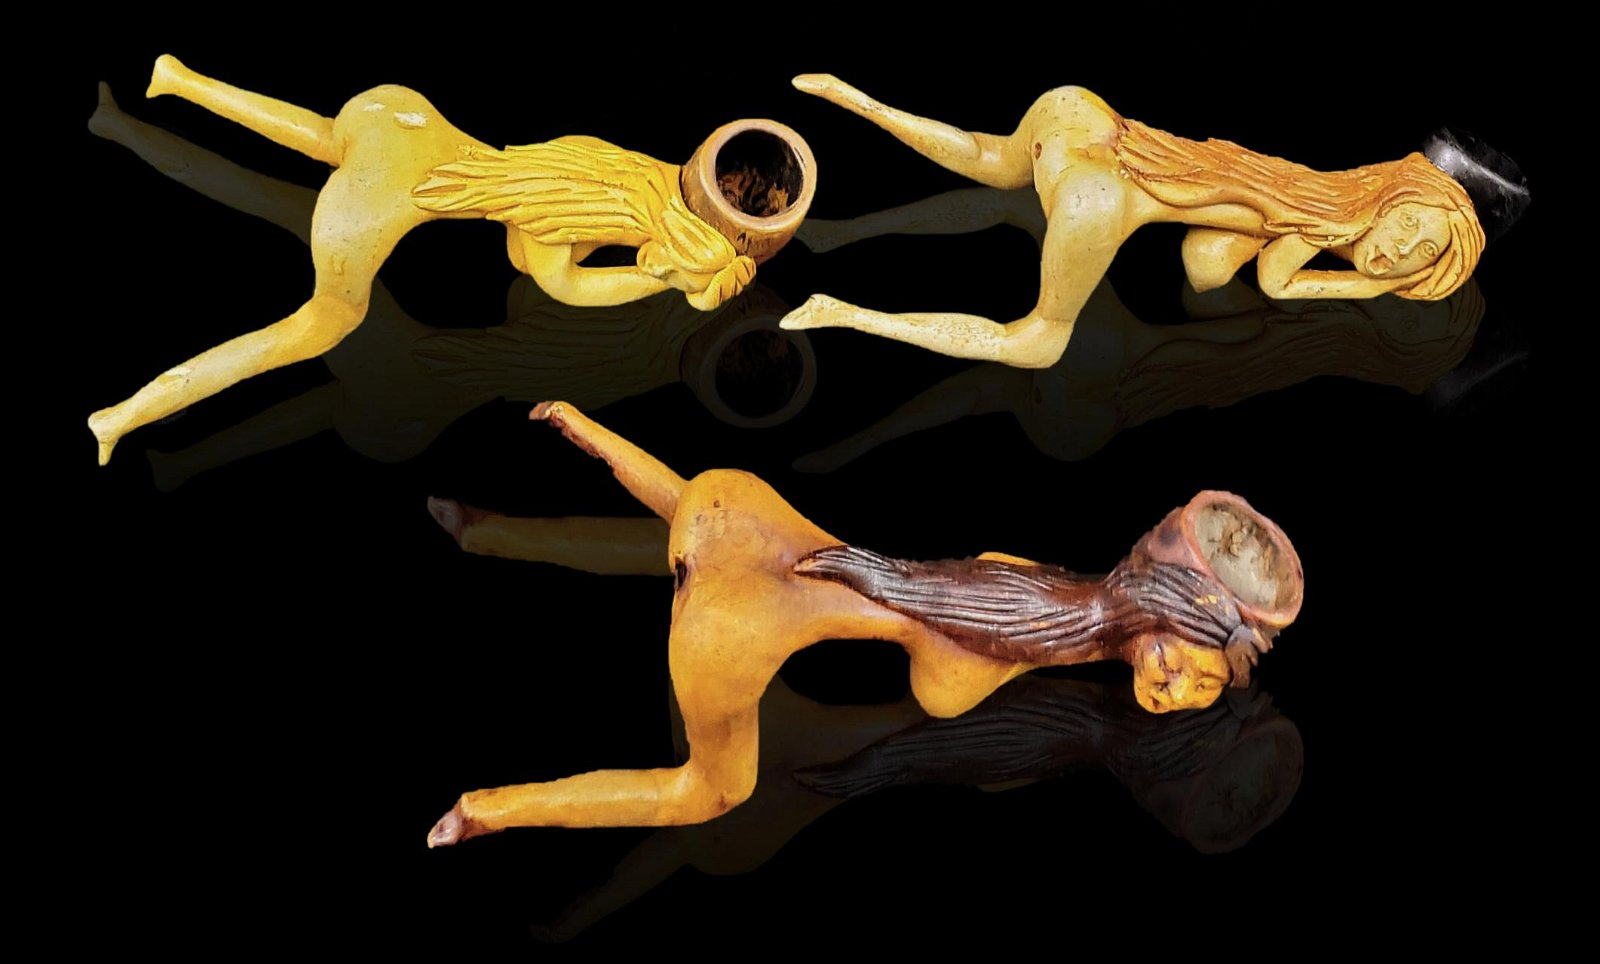 3 Erotic Pipes NUDES made from clay